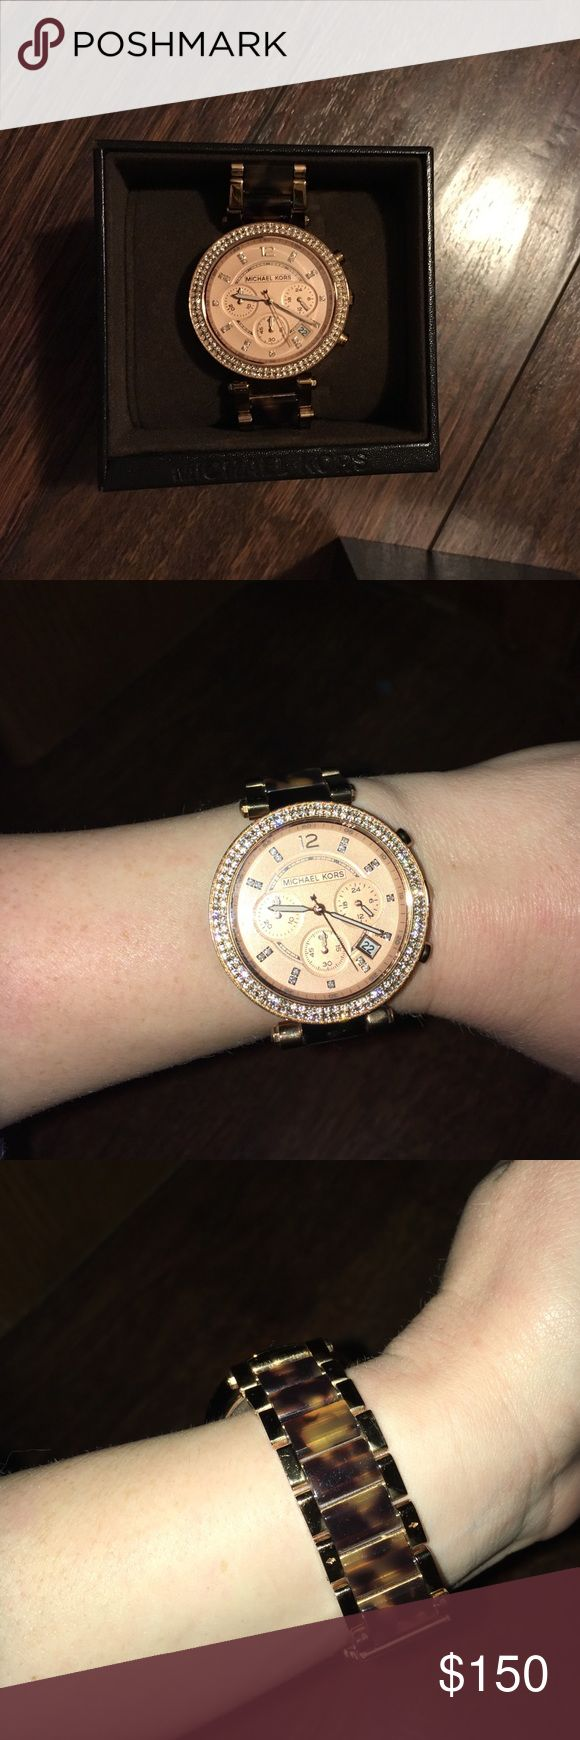 Michael Kors Rose Gold/Tortoise Watch Rose gold face surrounded by pave diamonds. Tortoise Shell band. Includes the links I had removed. Needs a new battery. There's a small bit of discoloration on the clasp, but it isn't visible when it's worn. Michael Kors Accessories Watches